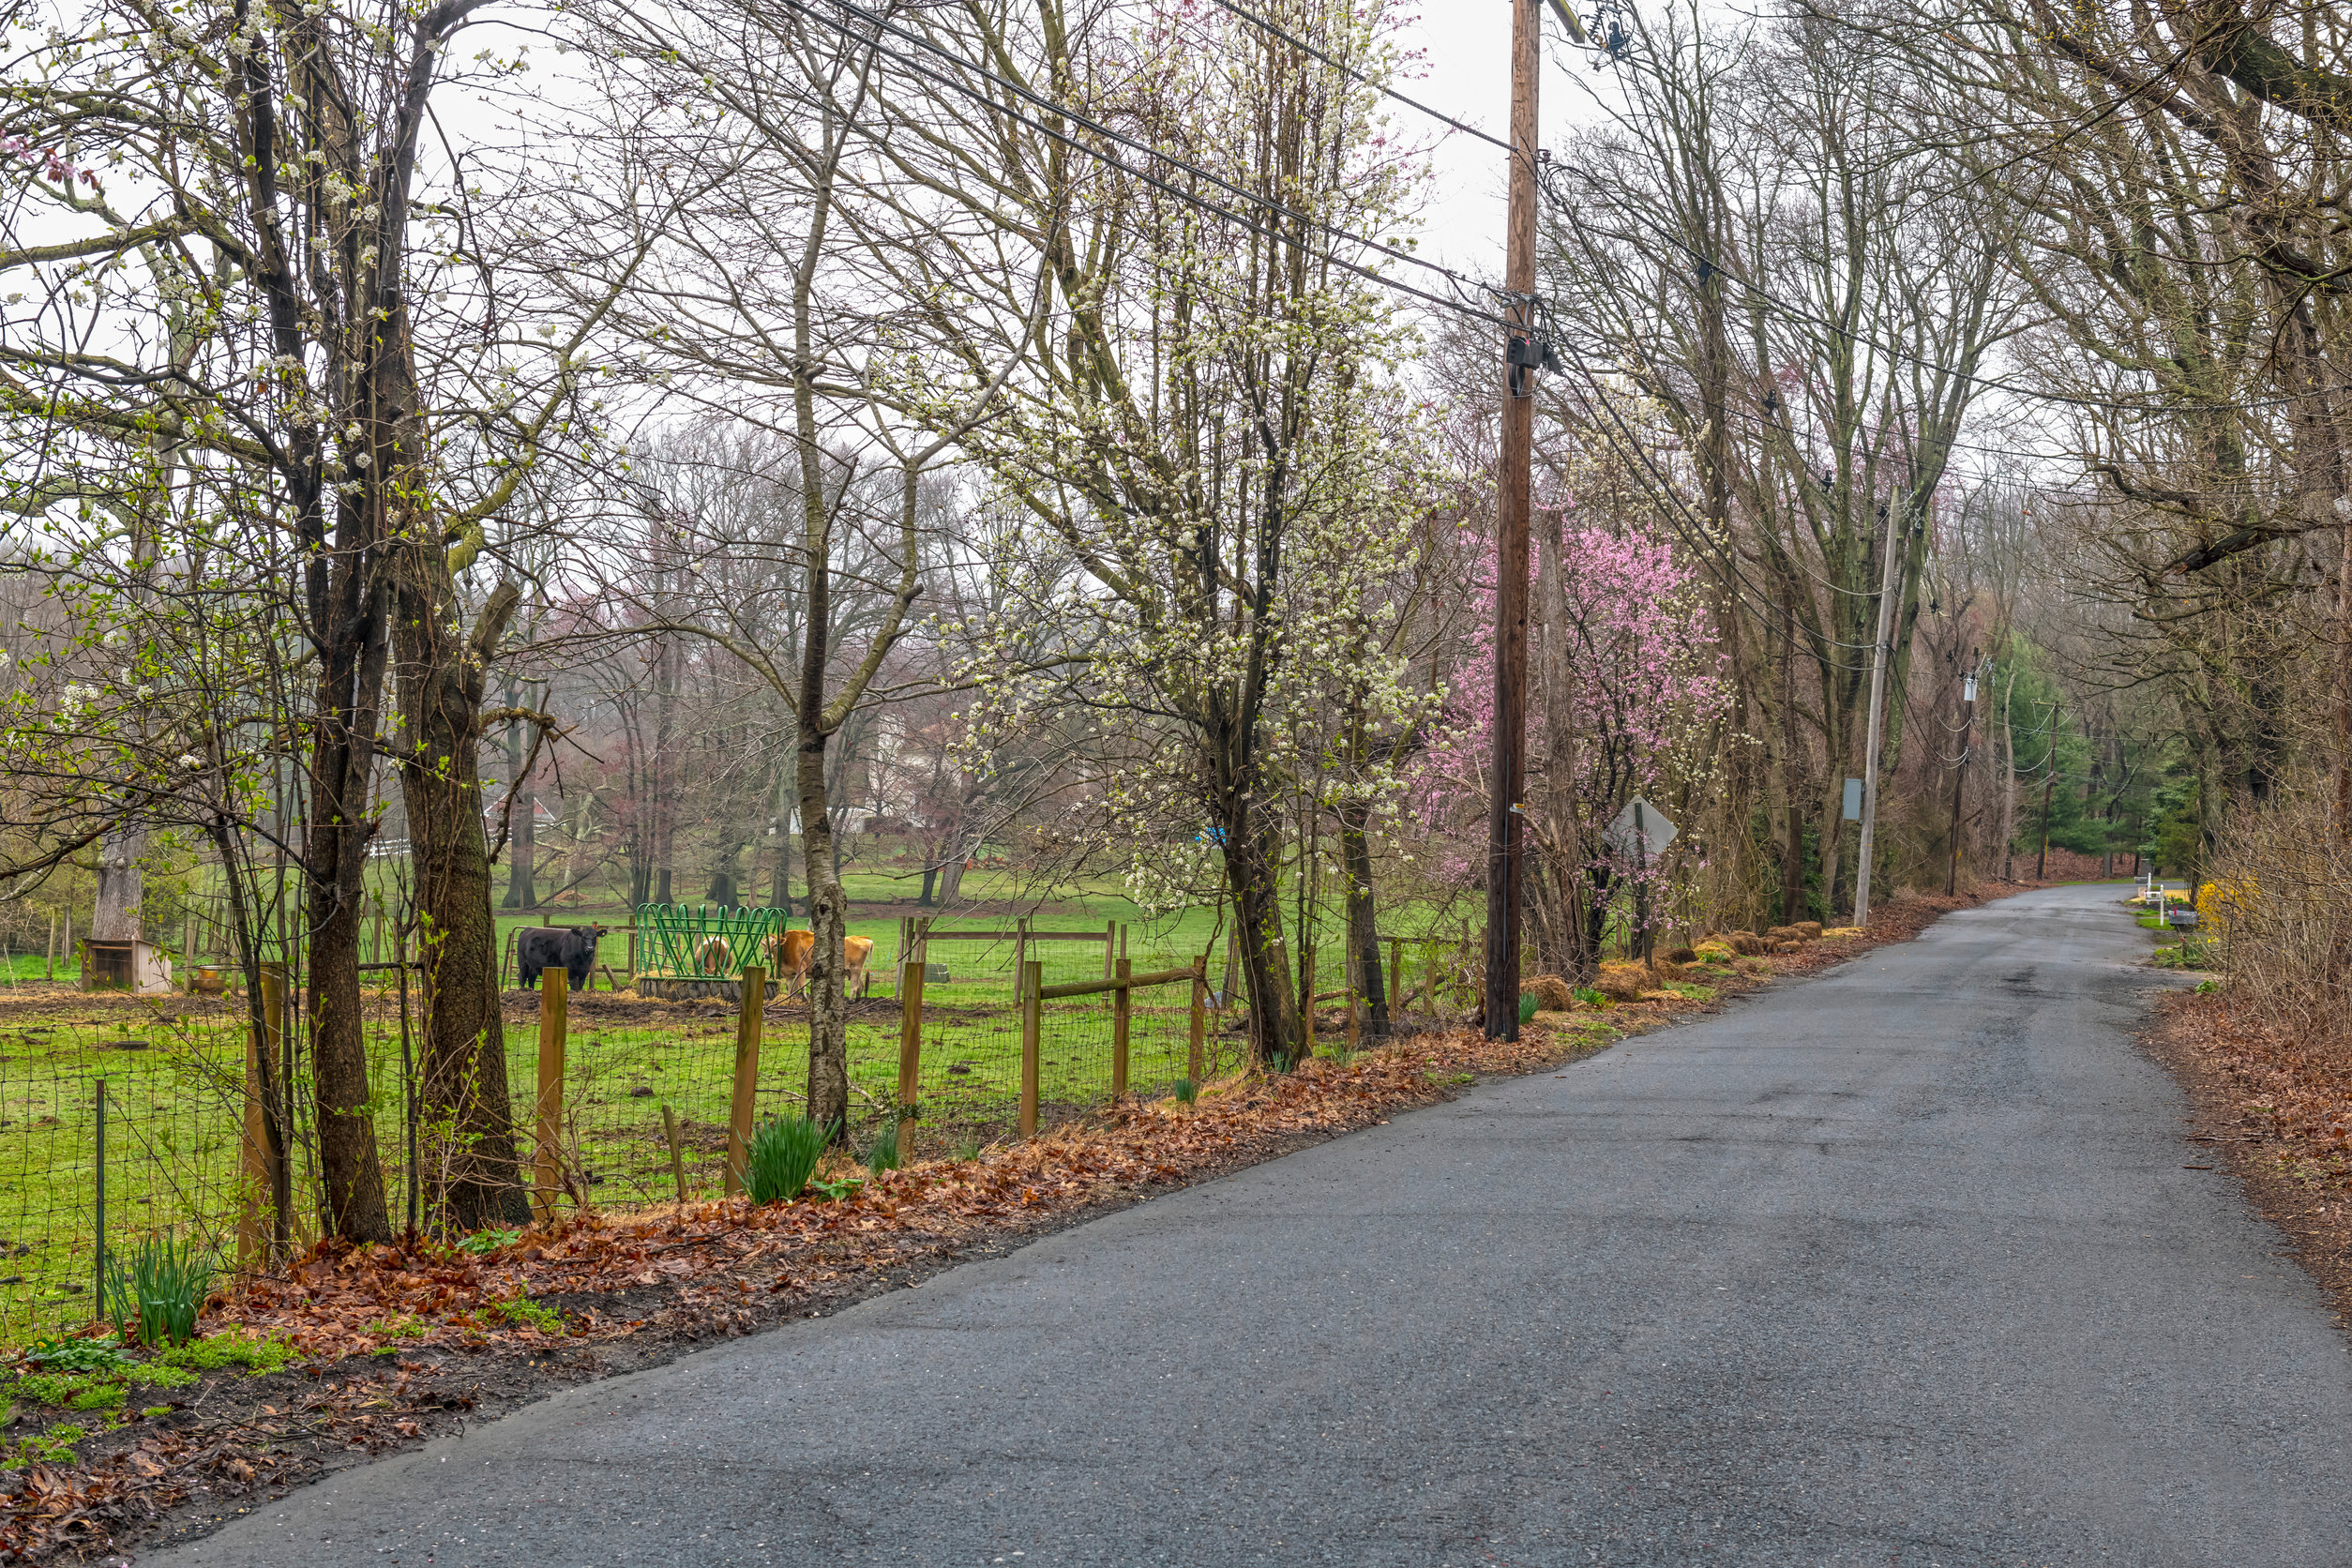 A rural country road surrounded by Spring blossoms in Monroe New Jersey